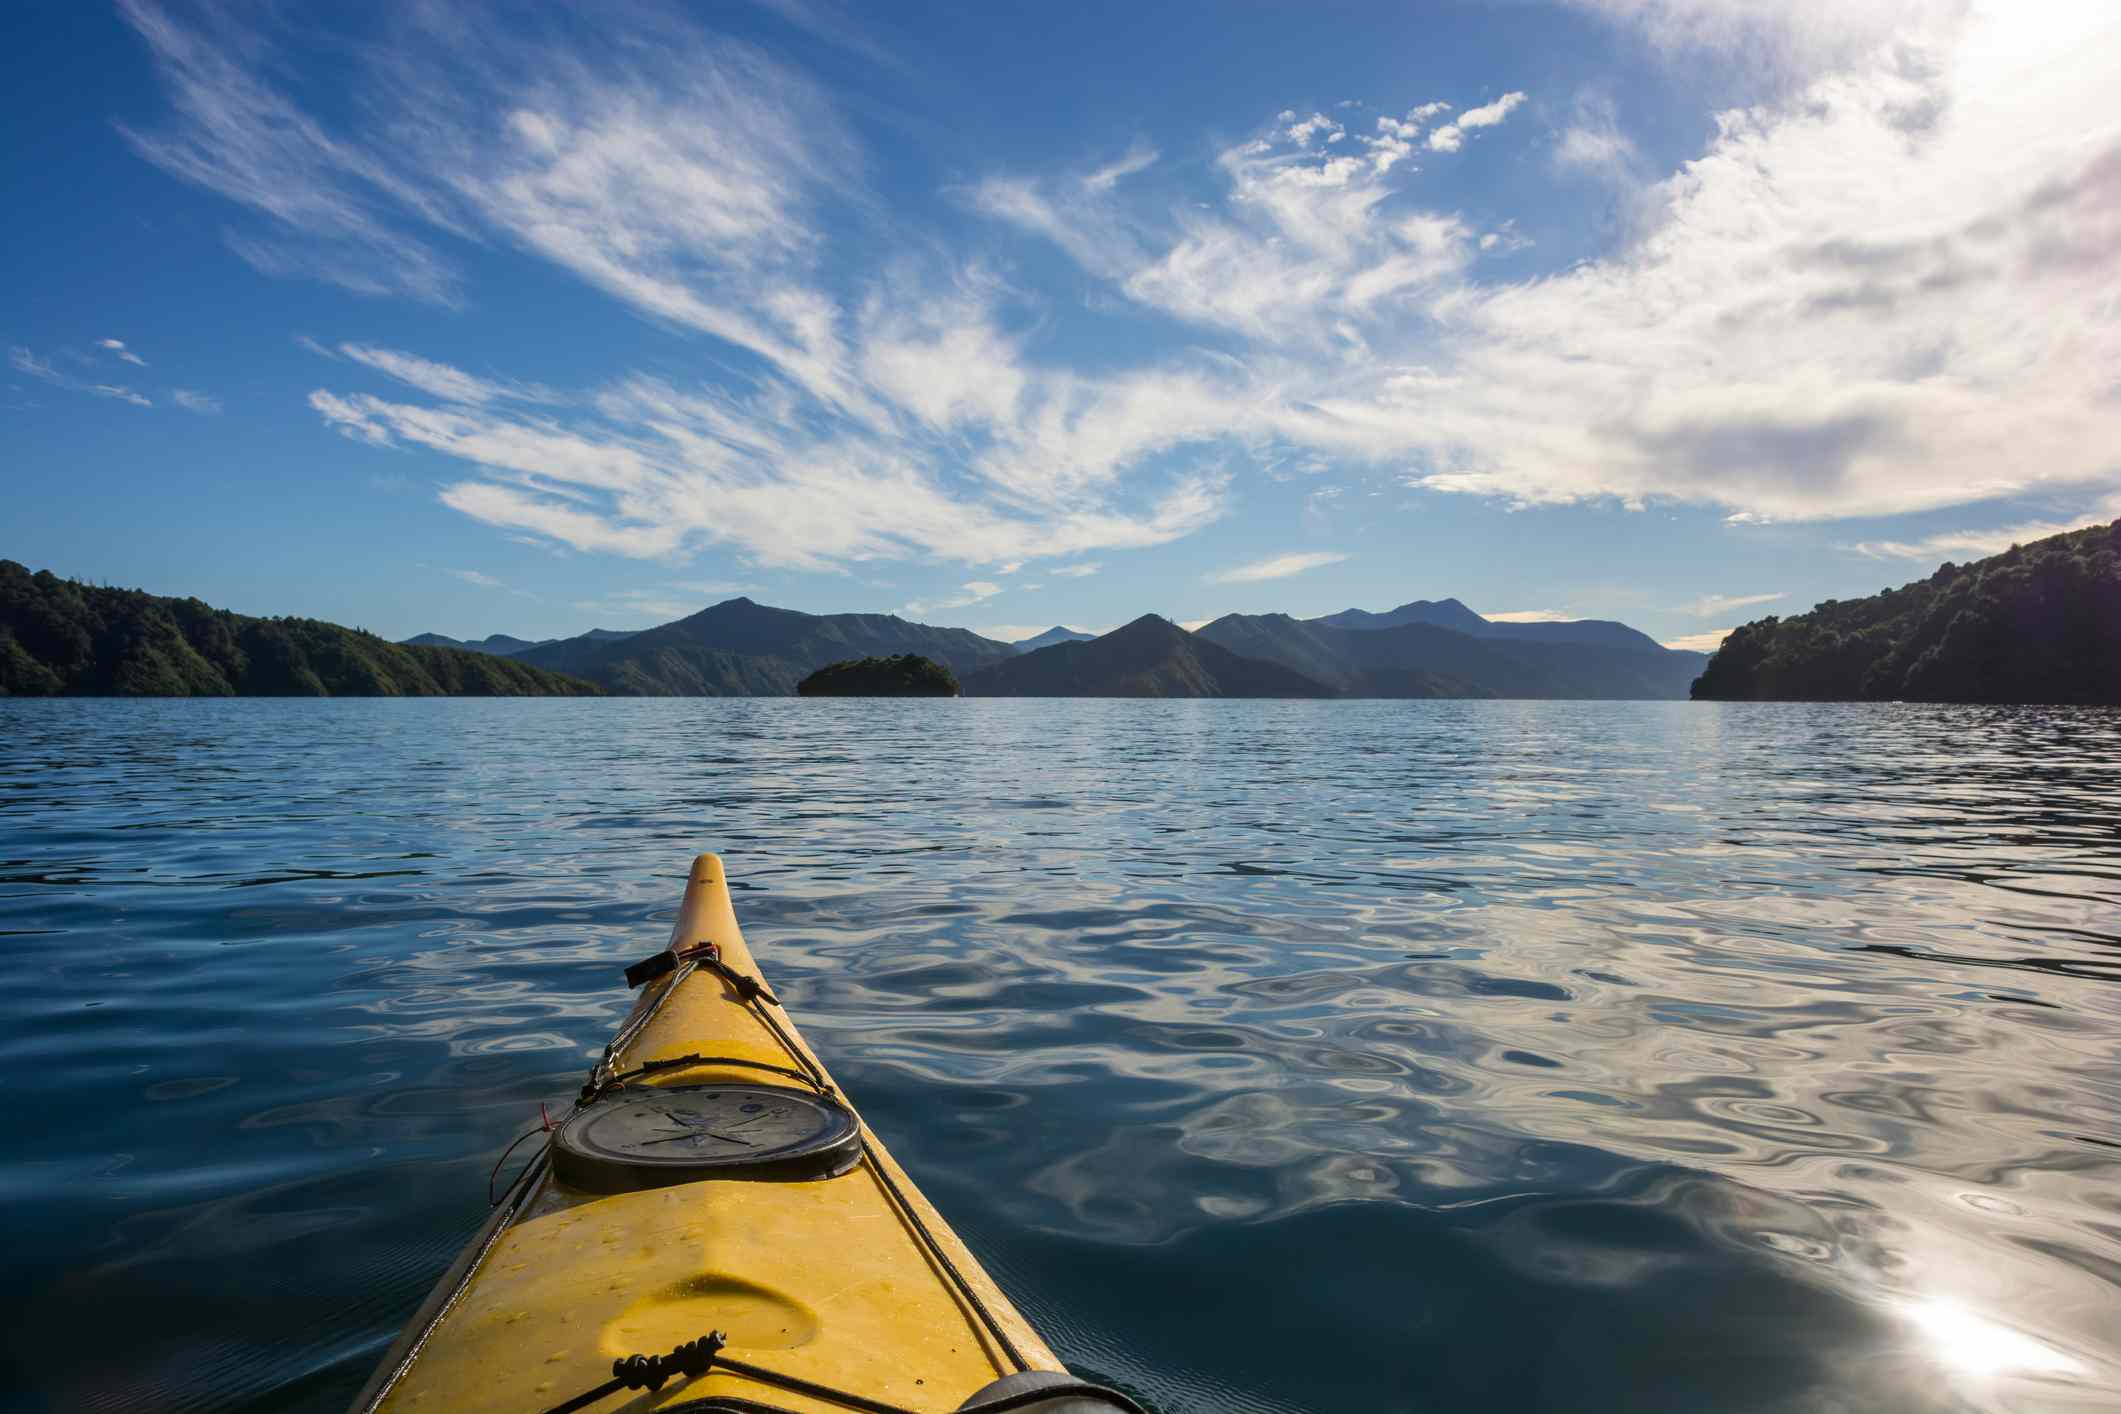 prow of a yellow kayak on the water with mountains in the distance and white clouds